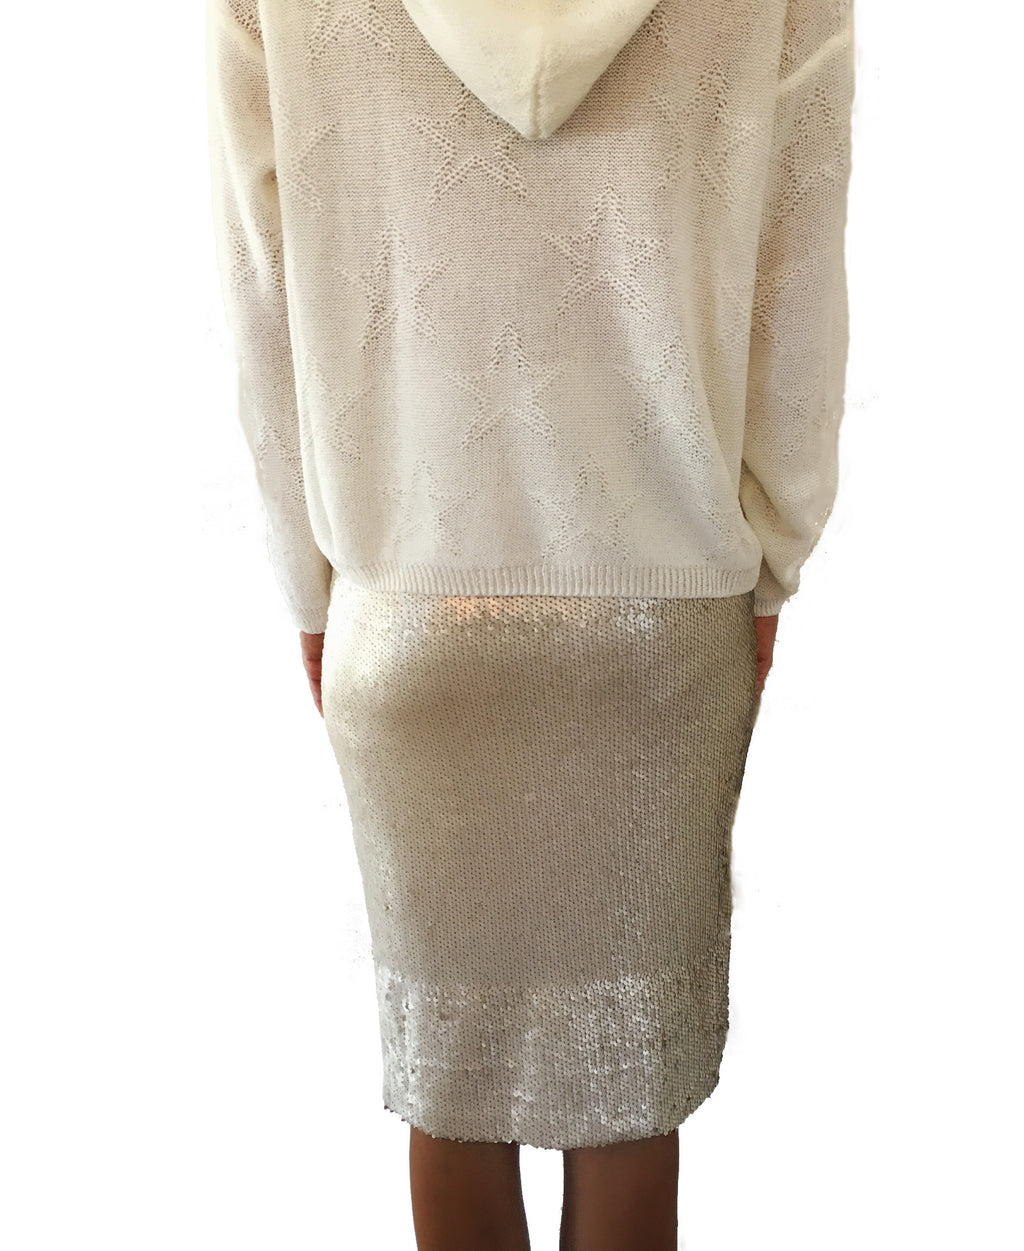 Nude Sequin Pencil Skirt